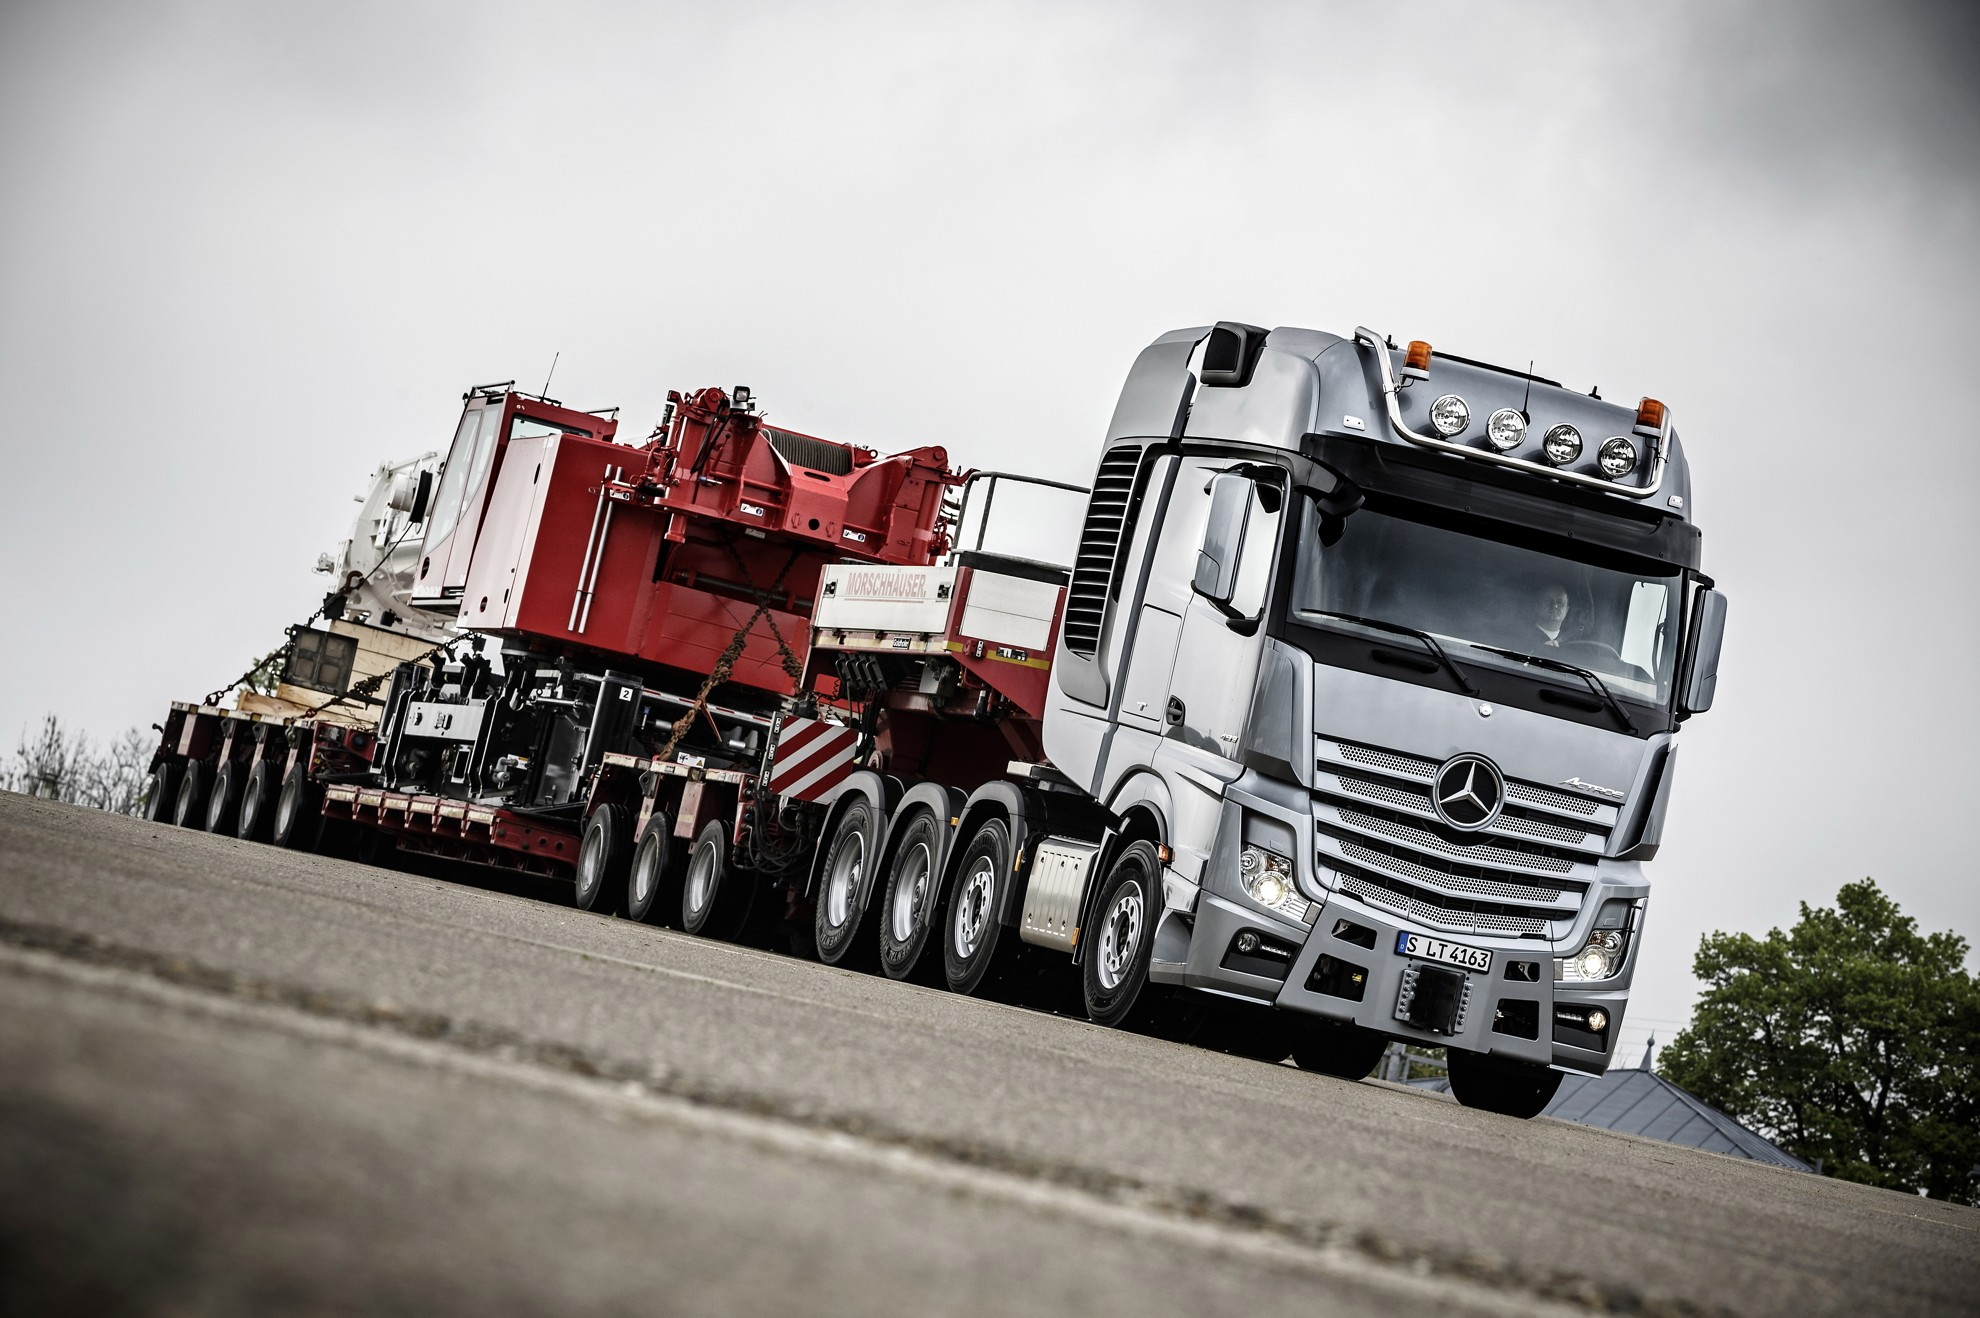 Mercedes Benz Slt Heavy Duty Trucking